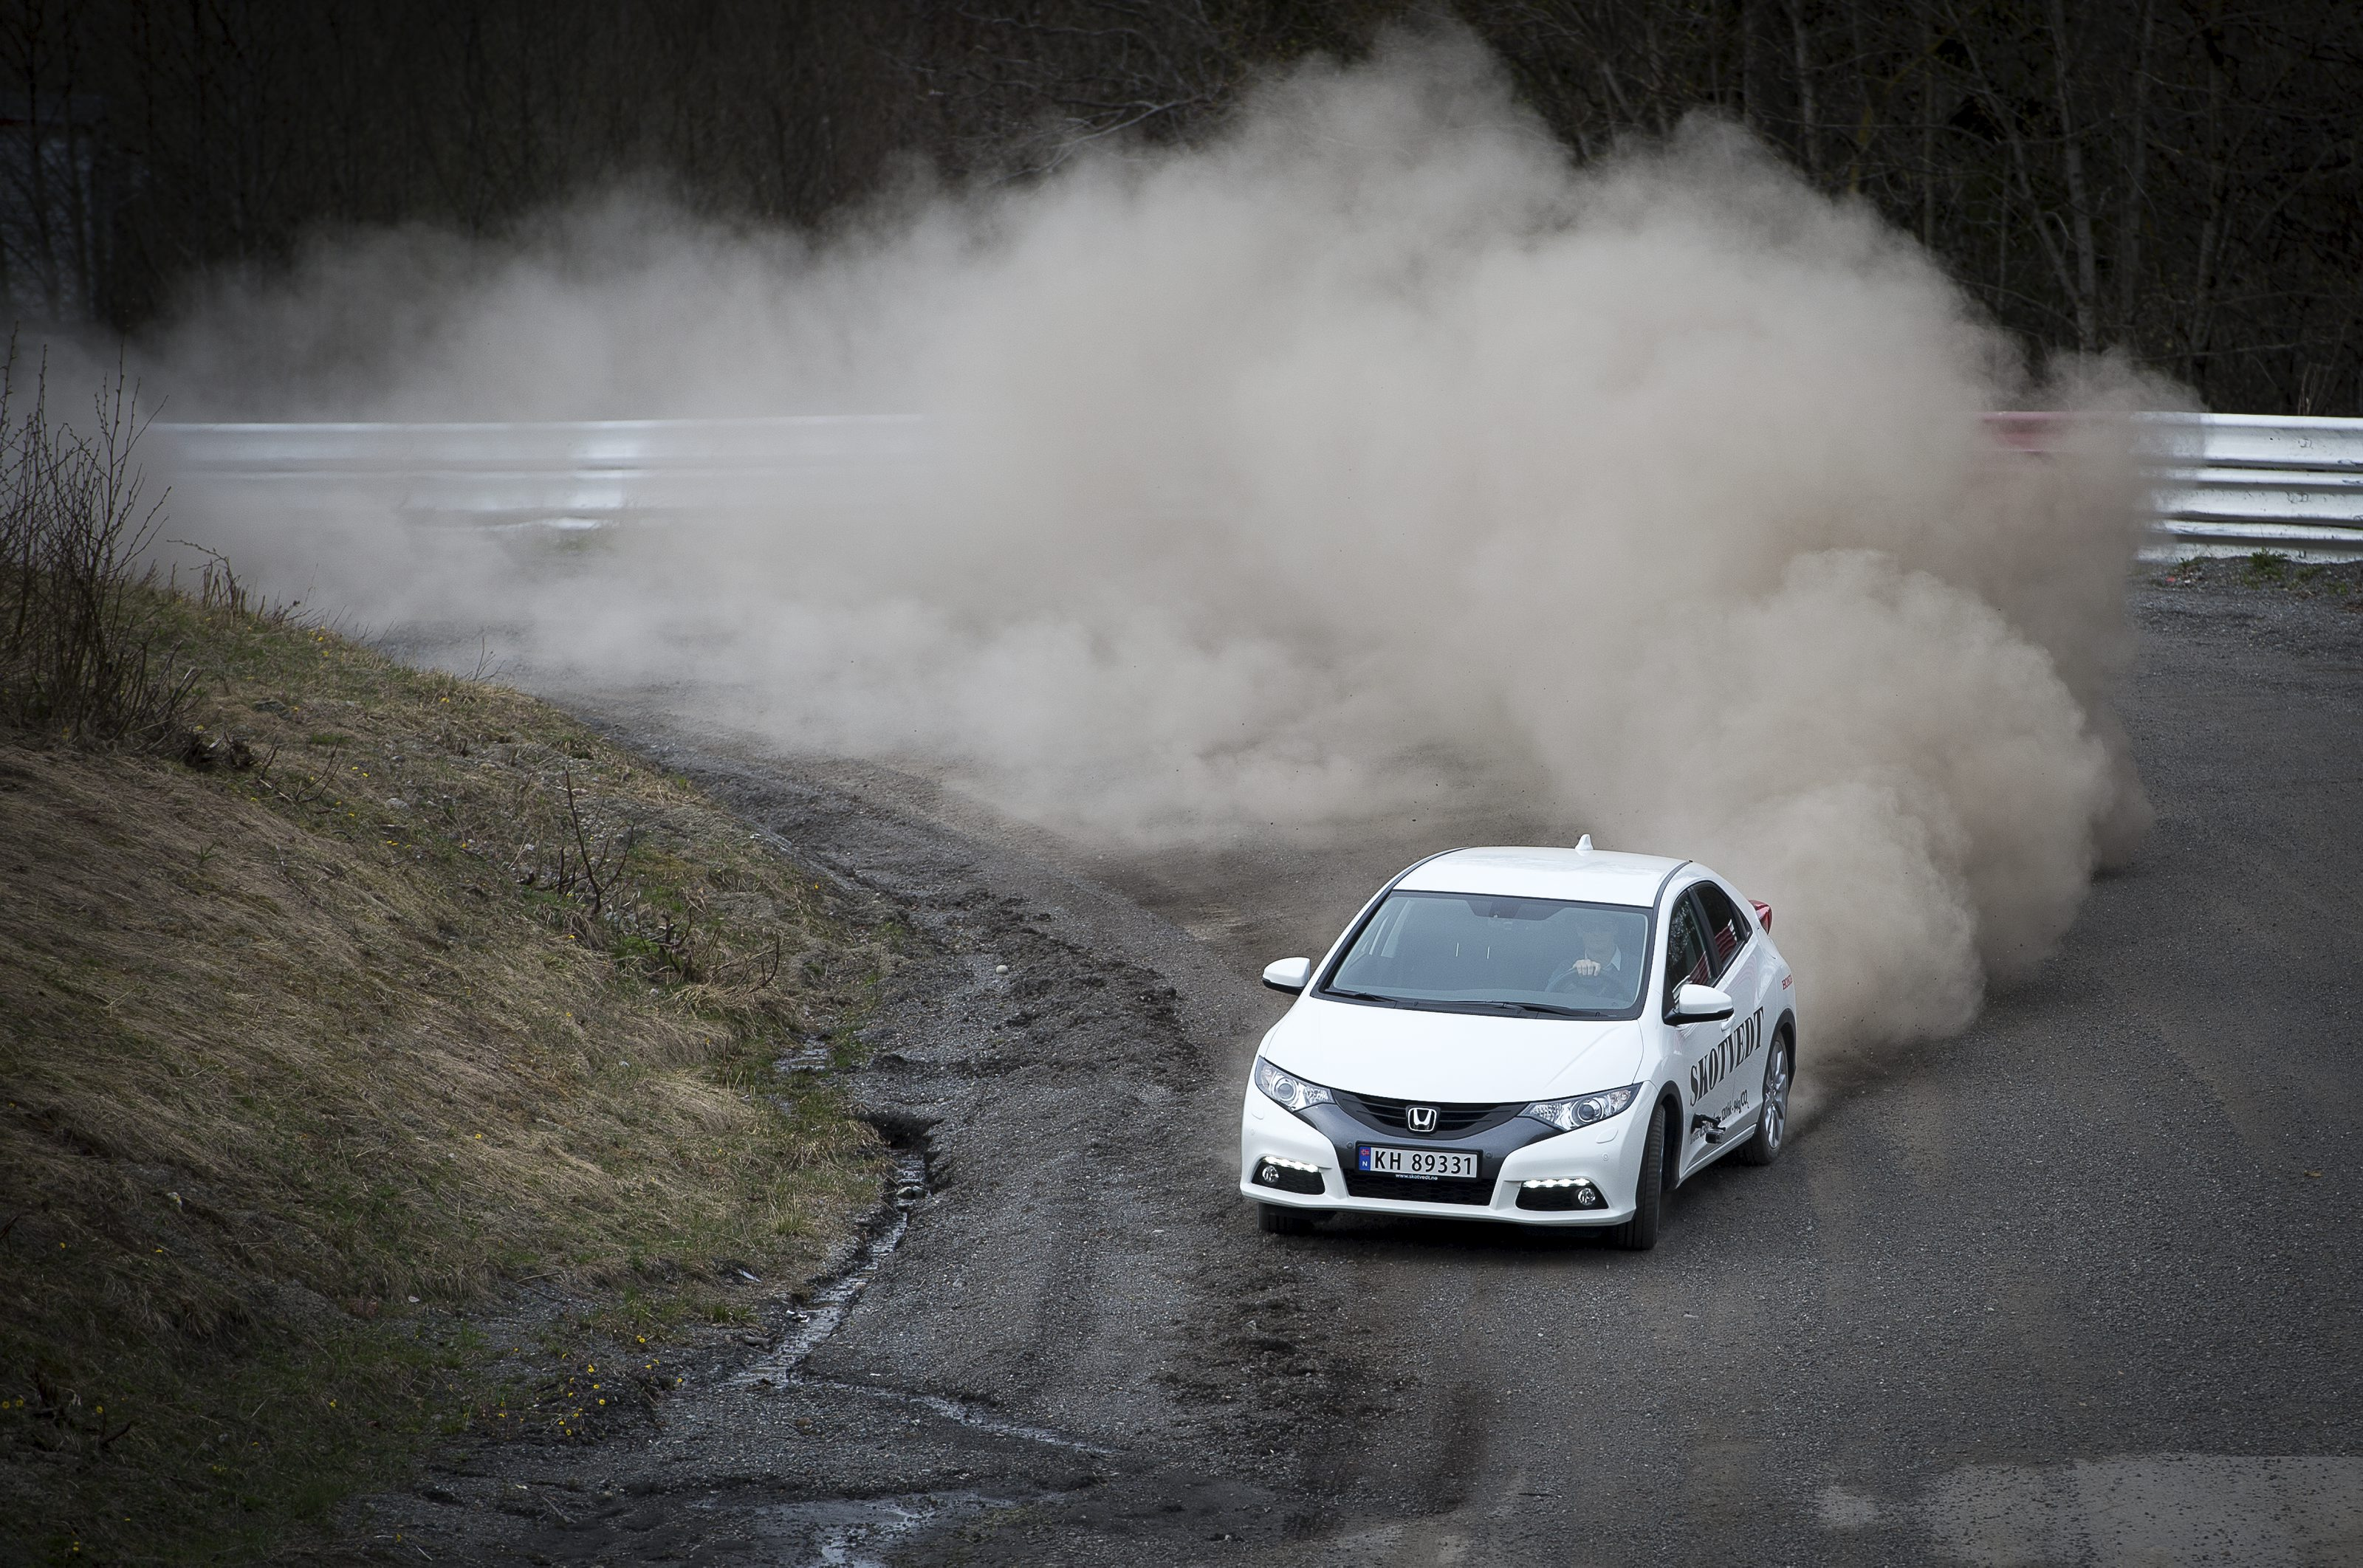 Test av Honda Civic p Lyngsbanen